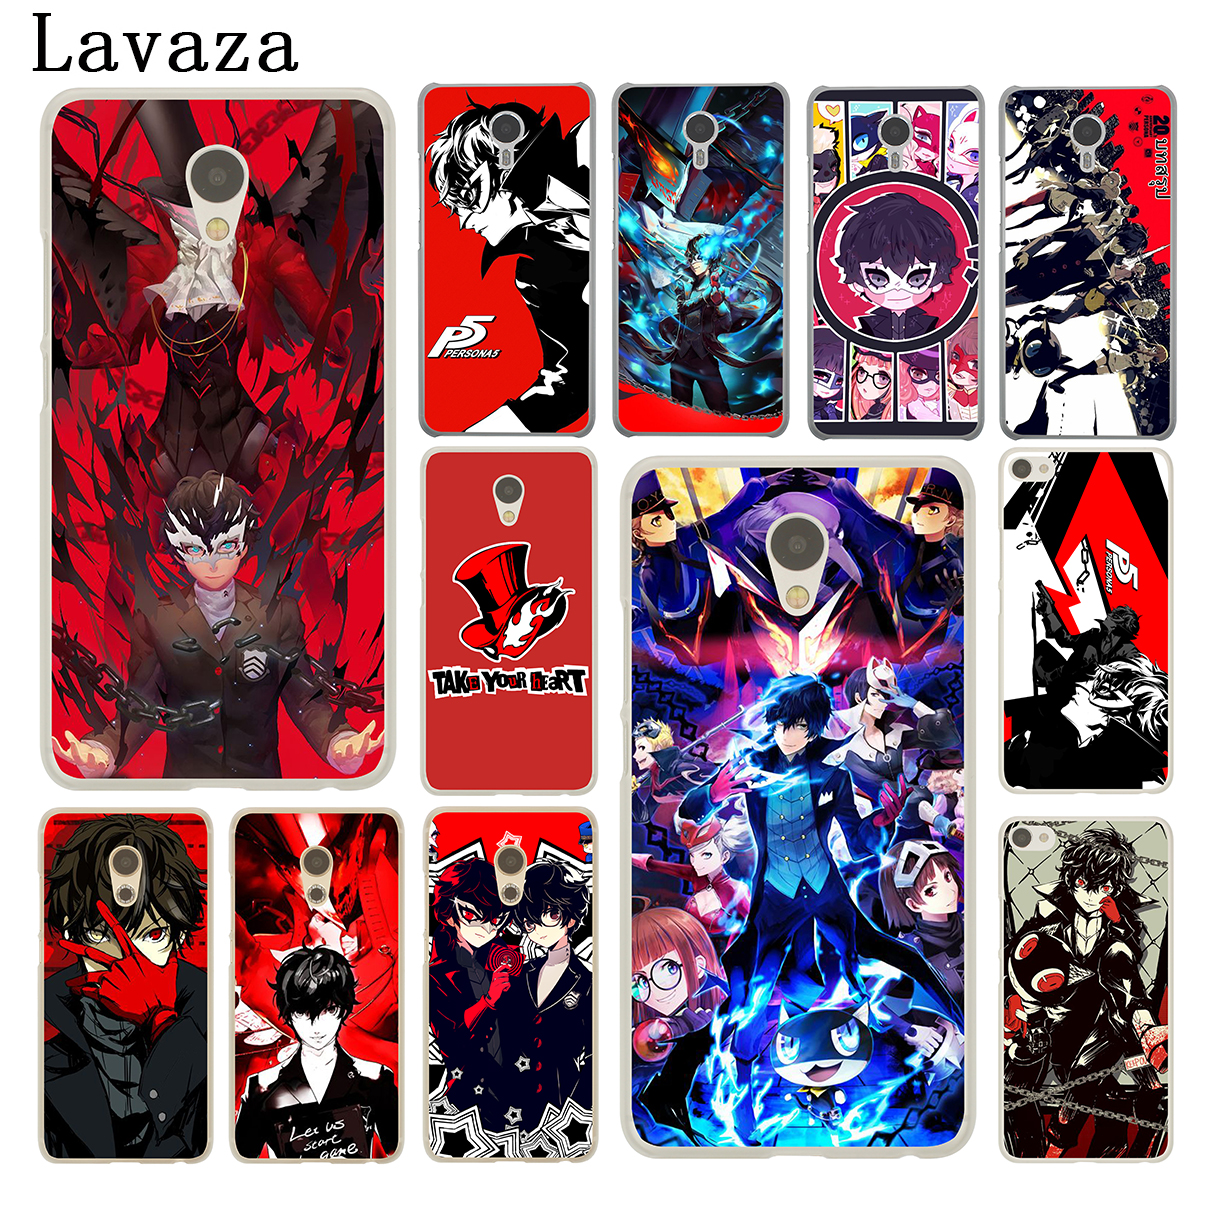 Lavaza p5 P Persona 5 Hard Phone Shell Case for Meizu M5C M6 M5 M5S M2 M3 M3S Mini Note U10 U20 Pro 7 Plus 6 Cover ...